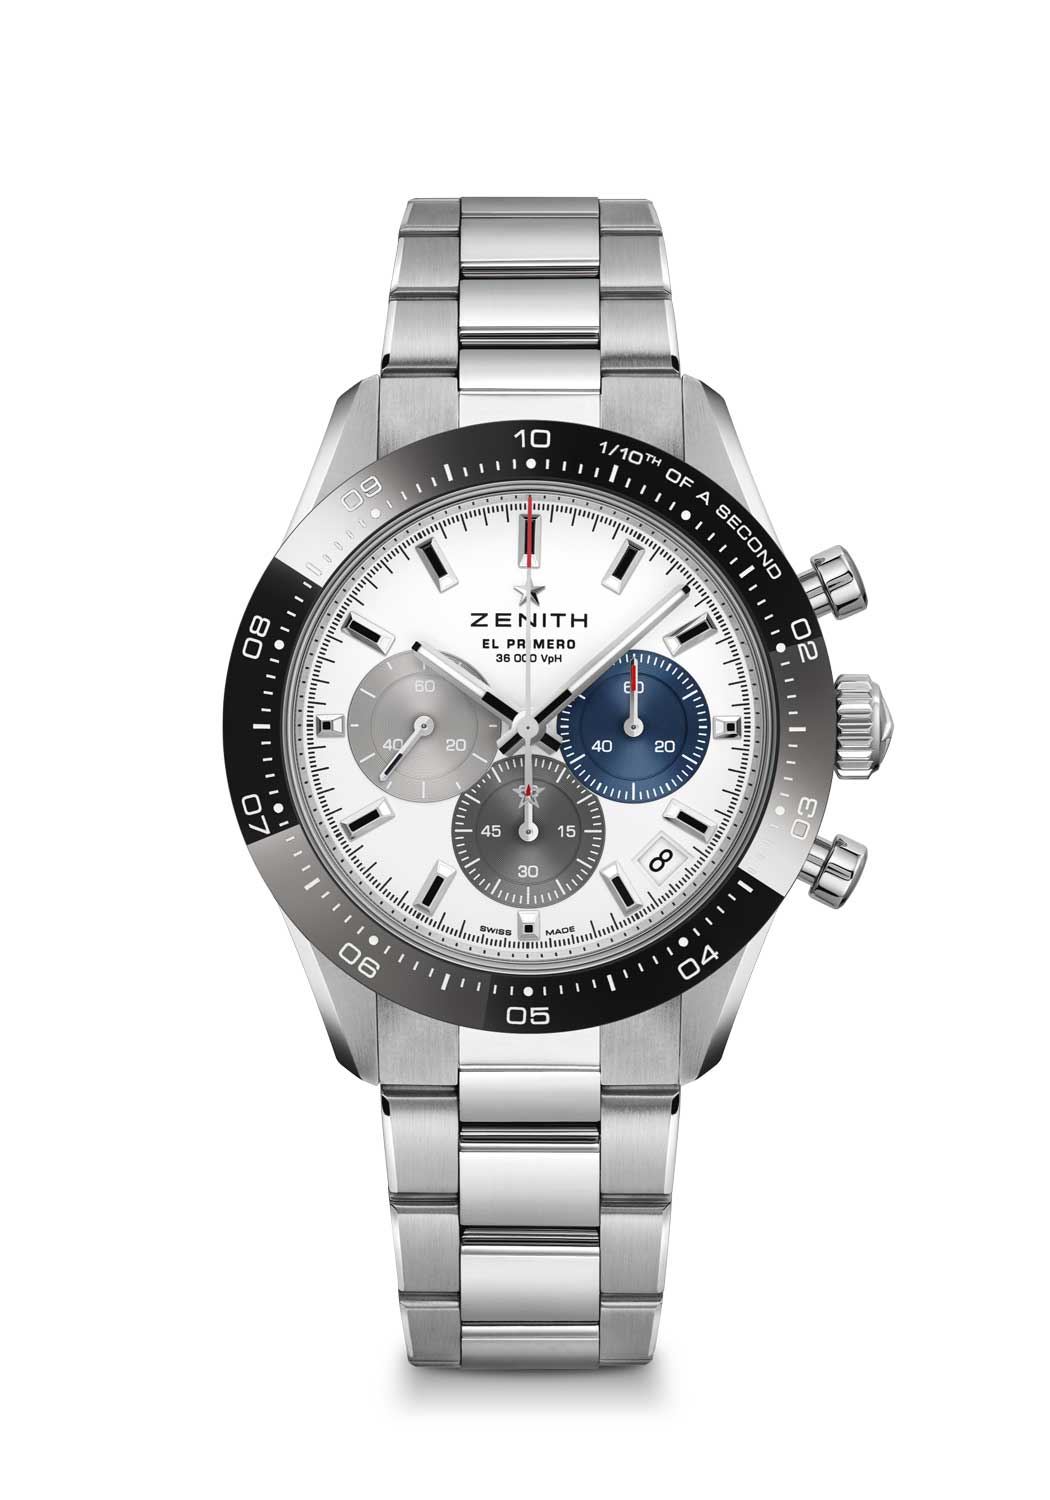 Zenith Chronomaster Sport ref. 03.3100.3600/69.M3100 with a white dial, fitted on a stainless steel bracelet